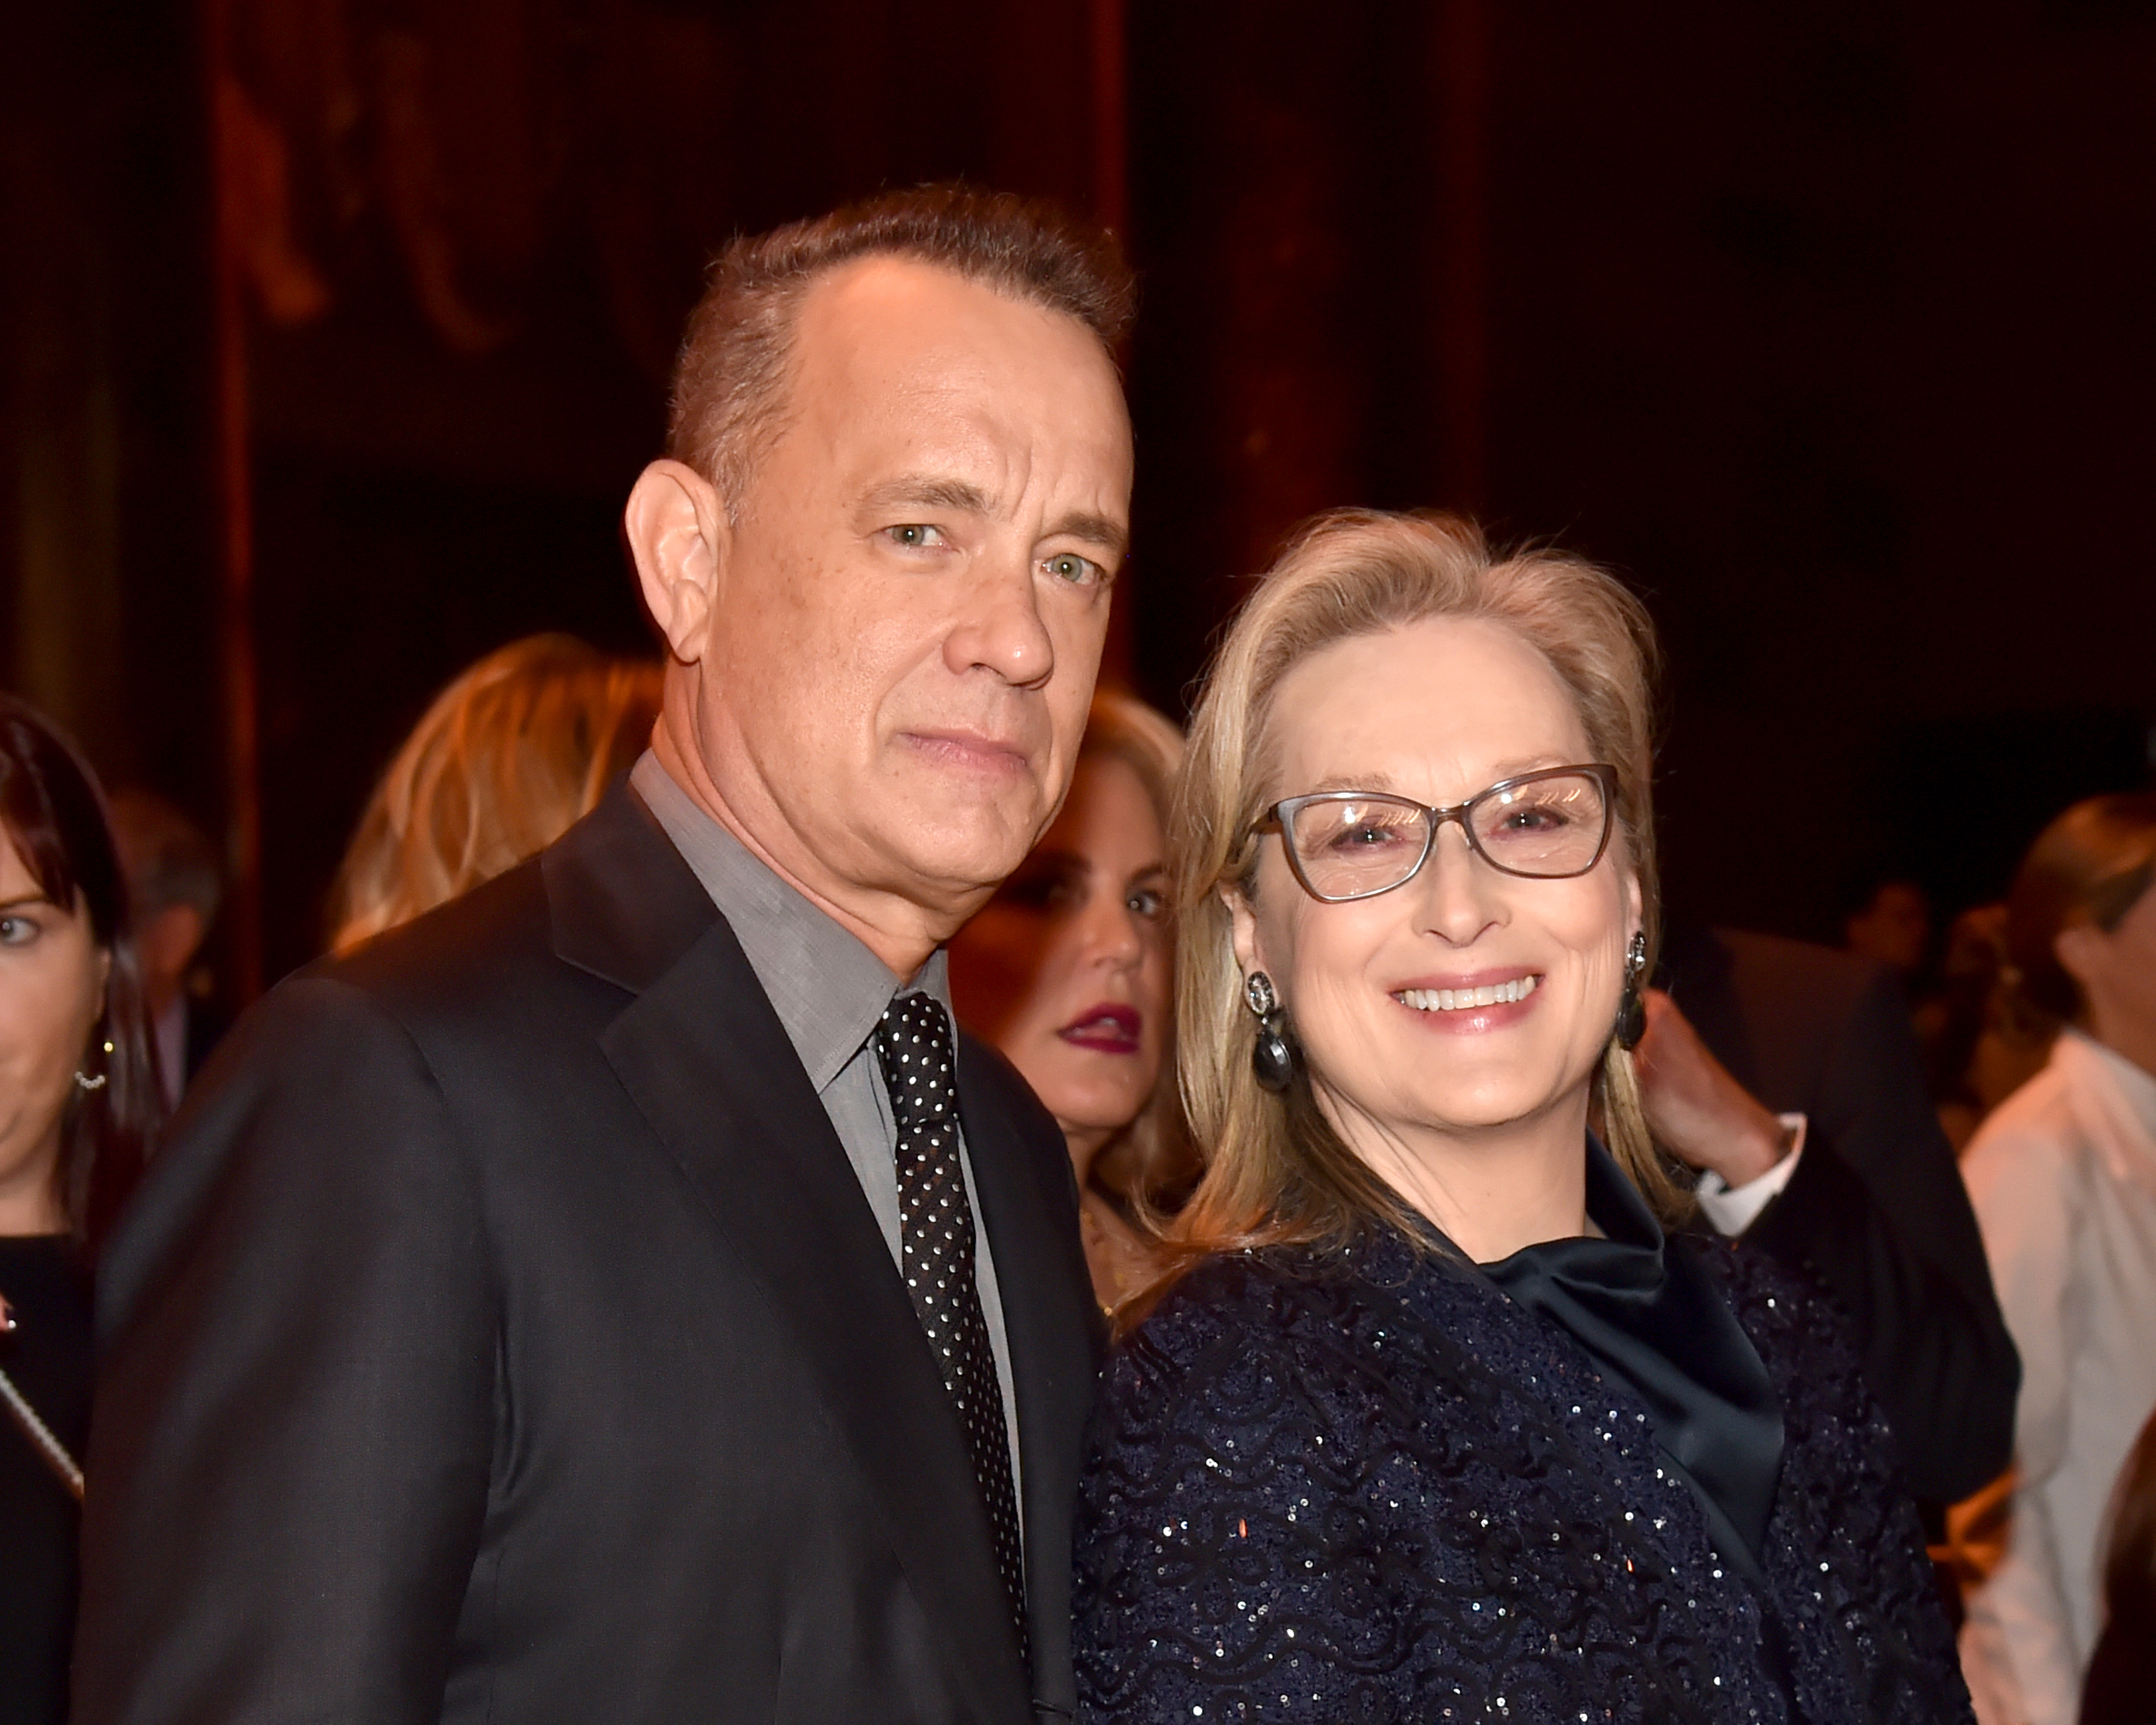 Tom Hanks and Meryl Streep attend the National Board of Review Annual Awards Gala at Cipriani 42nd Street on January 9, 2018 in New York City